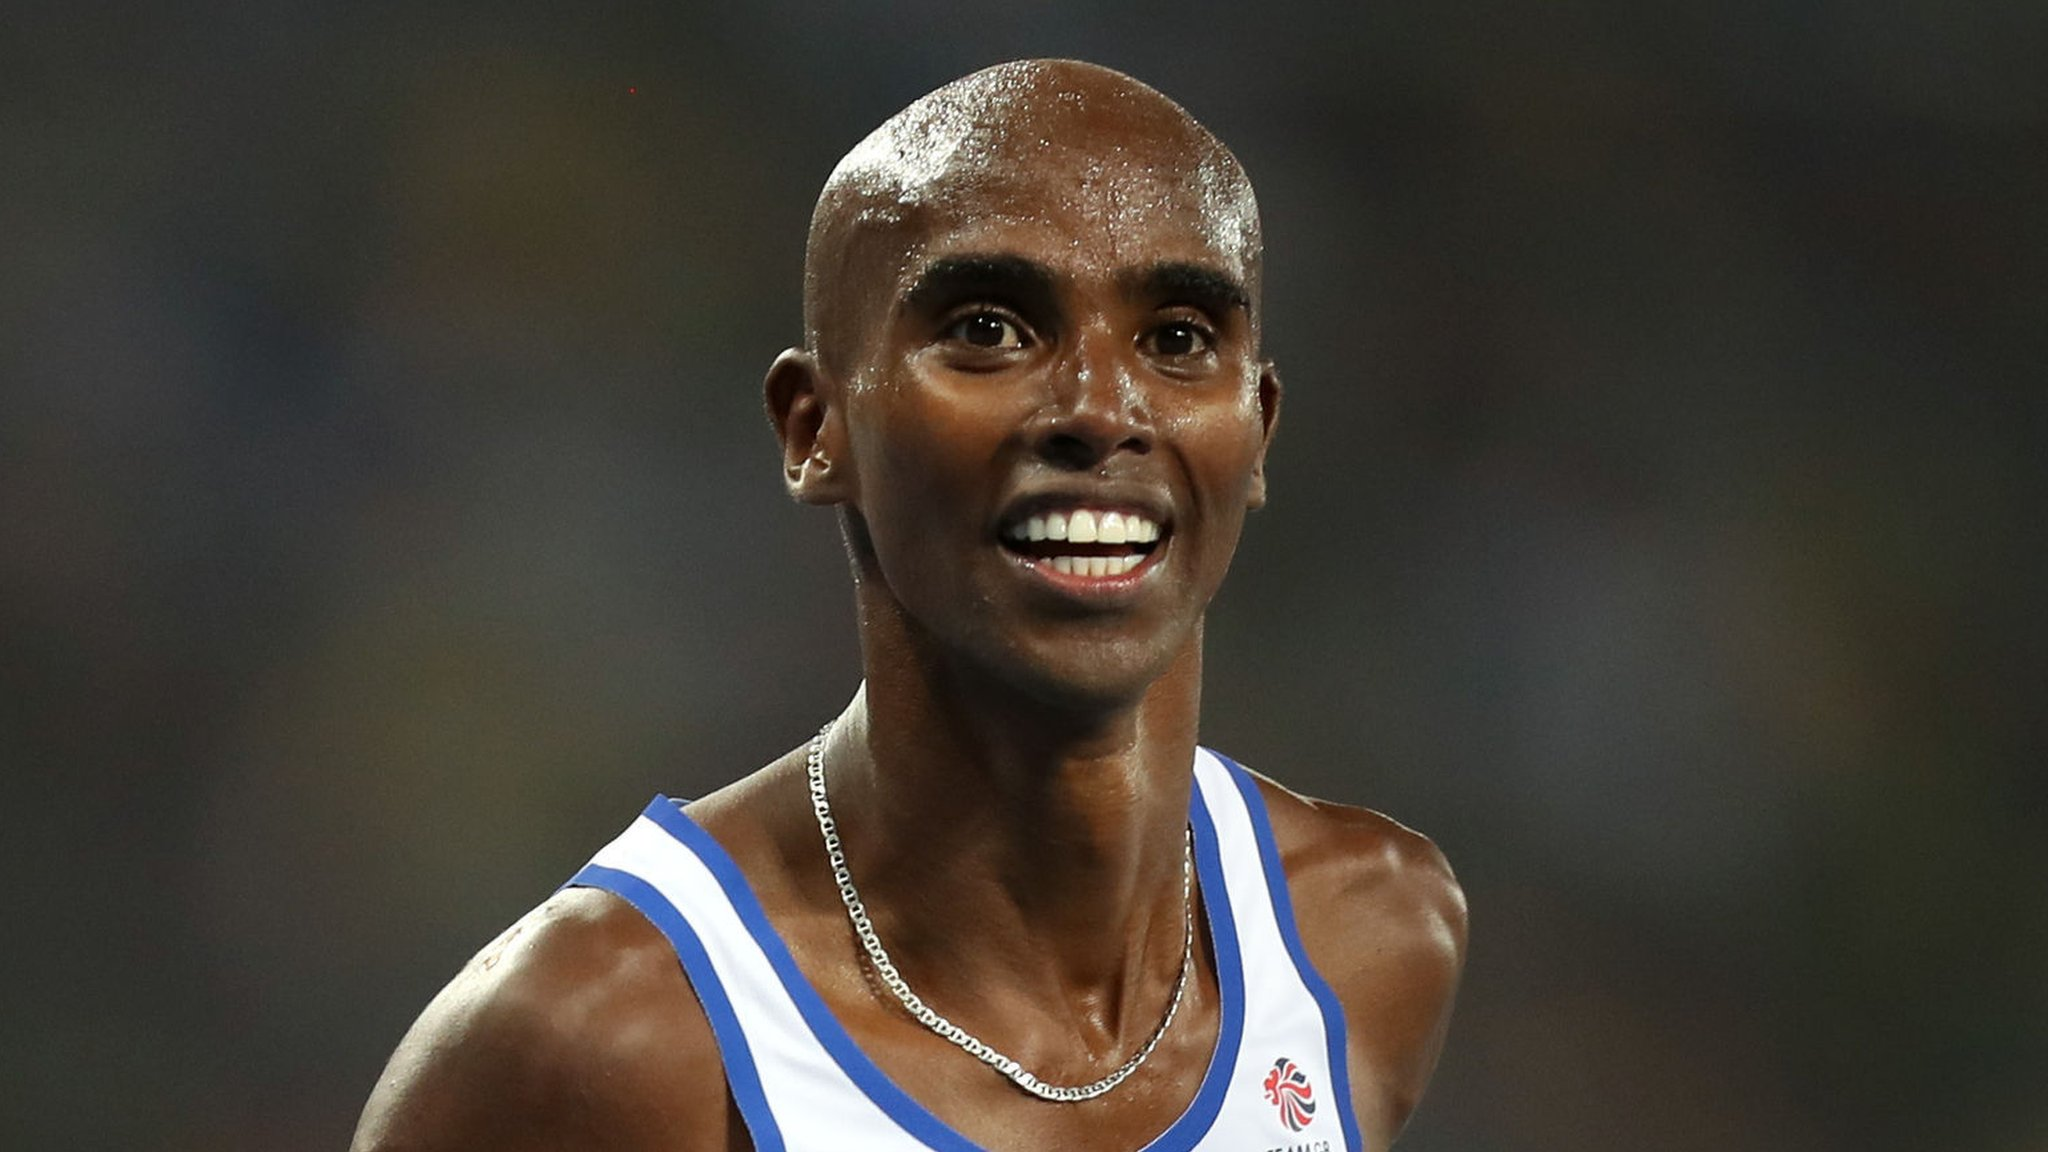 Mo Farah: Doctor who gave controversial supplement infusion to face MPs